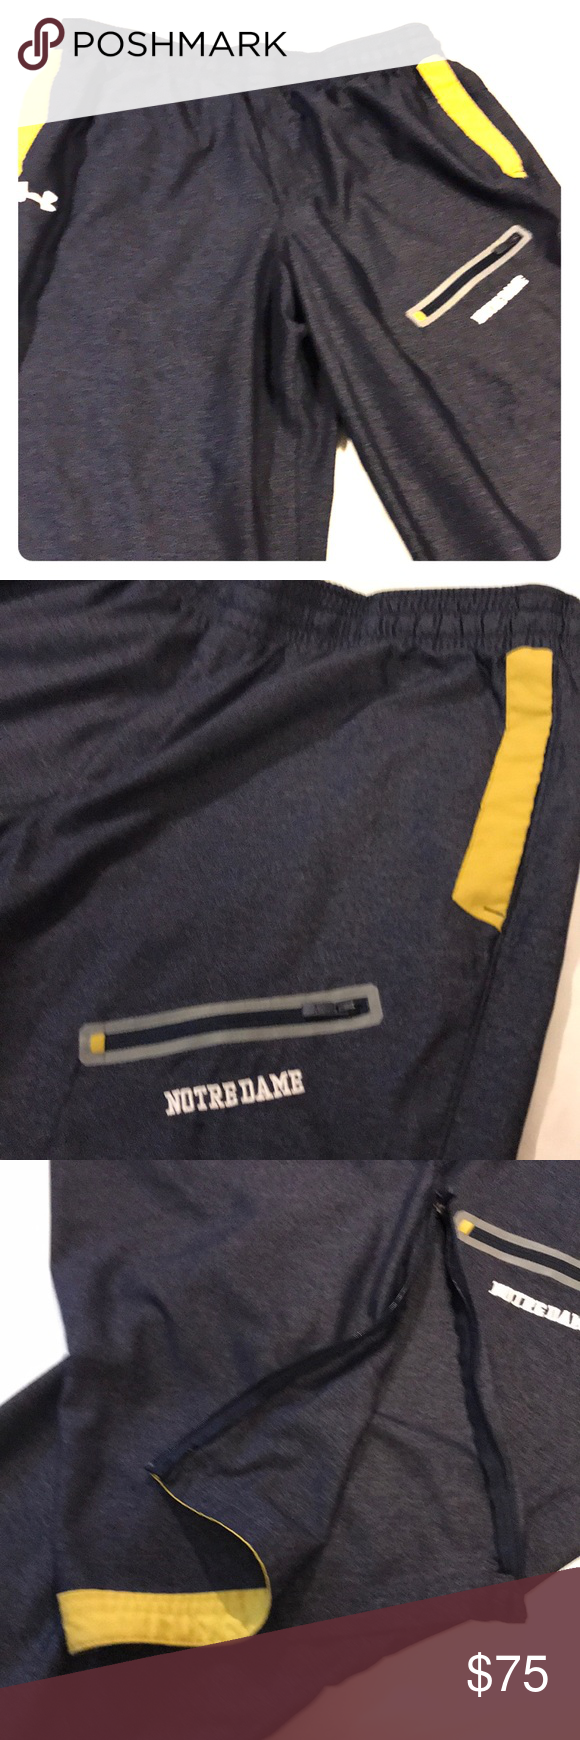 a6bddfddf3aa Under Armour Notre Dame Player Issued Travel Pants UA Loose Denim Look Team  Issued Pants Slash